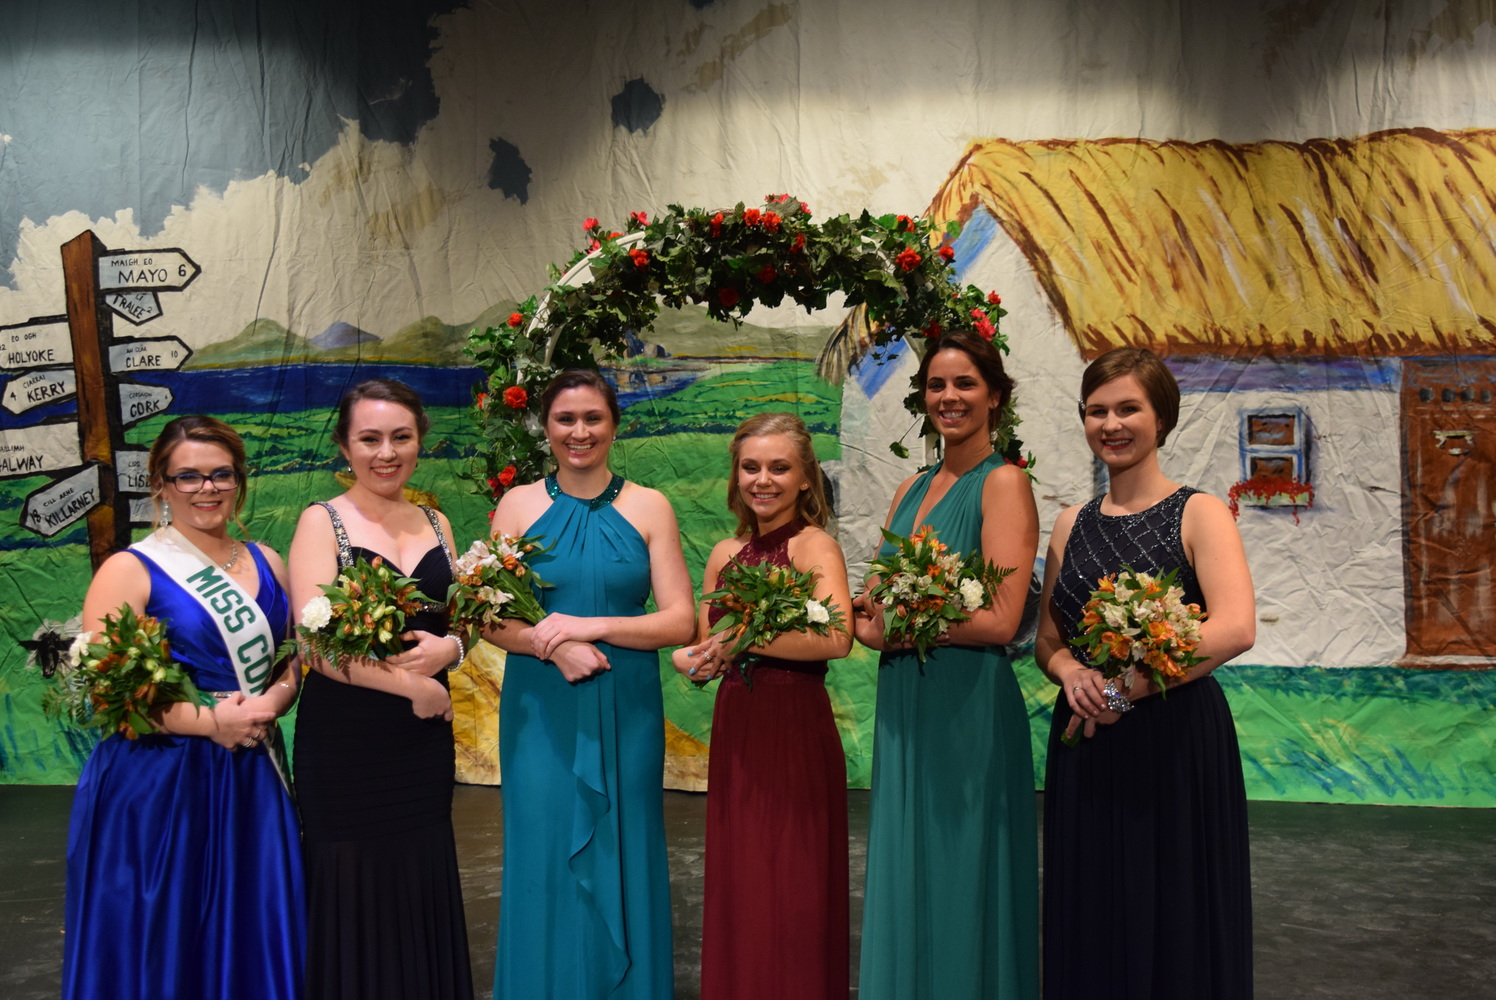 Holyoke 2018 Miss Congeniality and colleen finalists: Brenna Fogarty, Bridget Higgins, Carly Costello, Kassidy Lawrence, Madelynne Kelleher, and Erin Hebert.